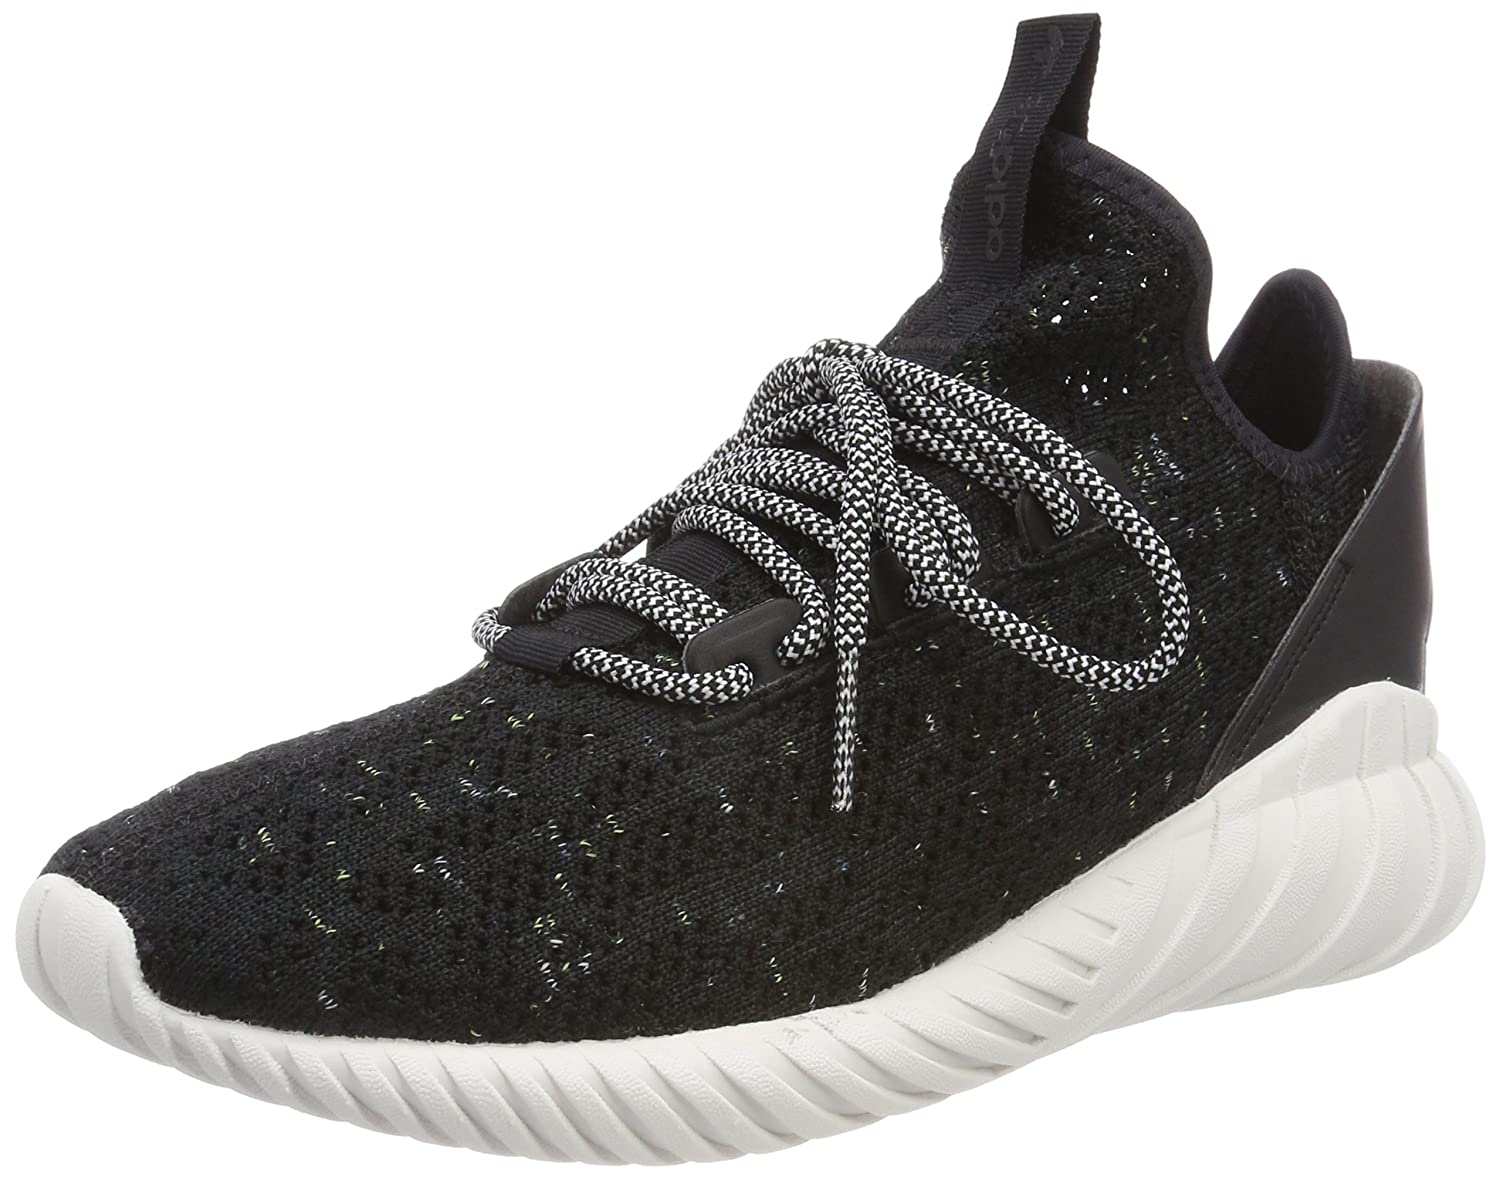 competitive price ece33 40a33 Amazon.com | Adidas Tubular Doom Sock Primeknit Mens ...